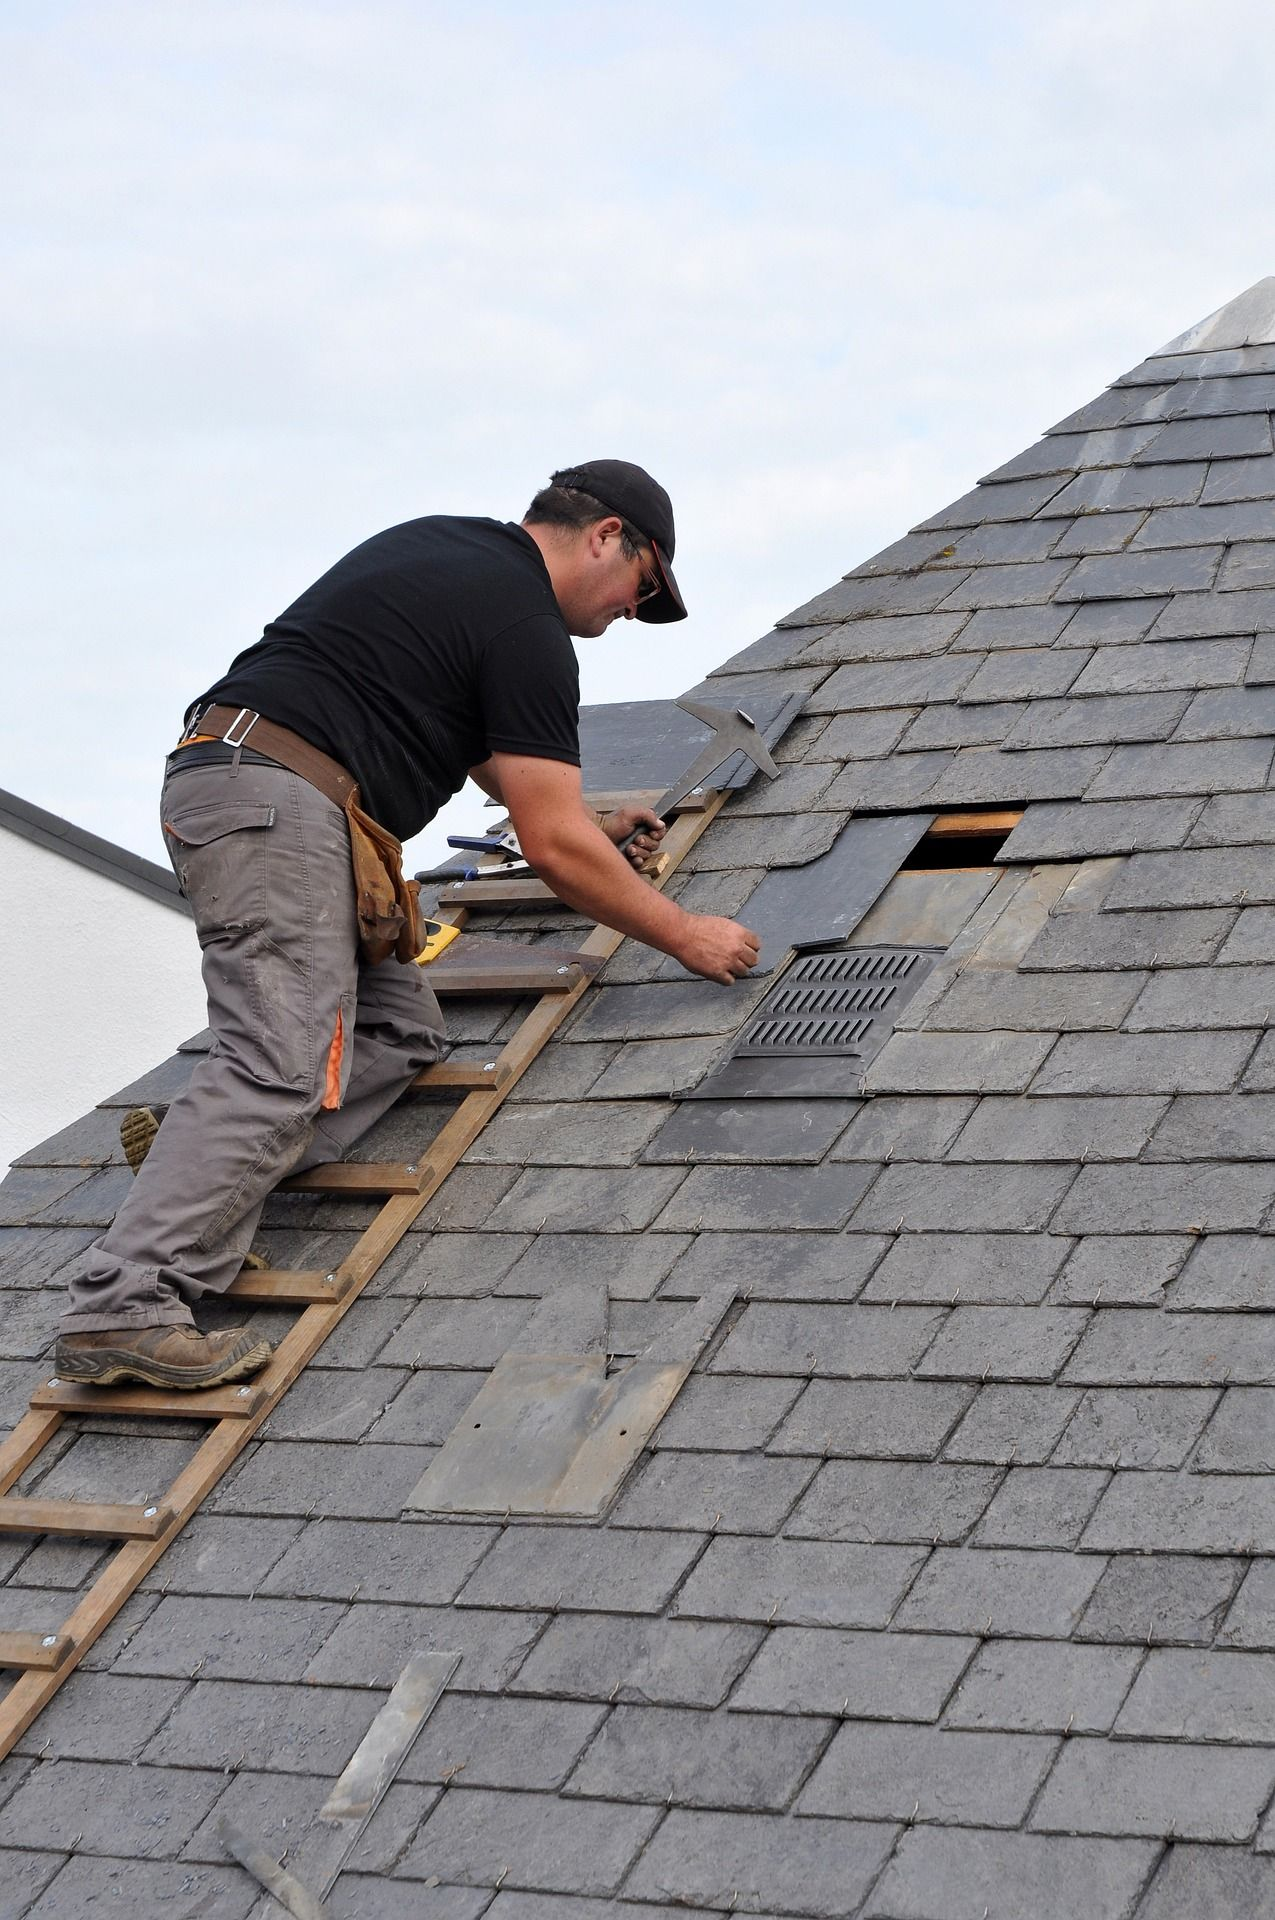 Asphalt Roof Shingles Usually Last Up To 25 Years However